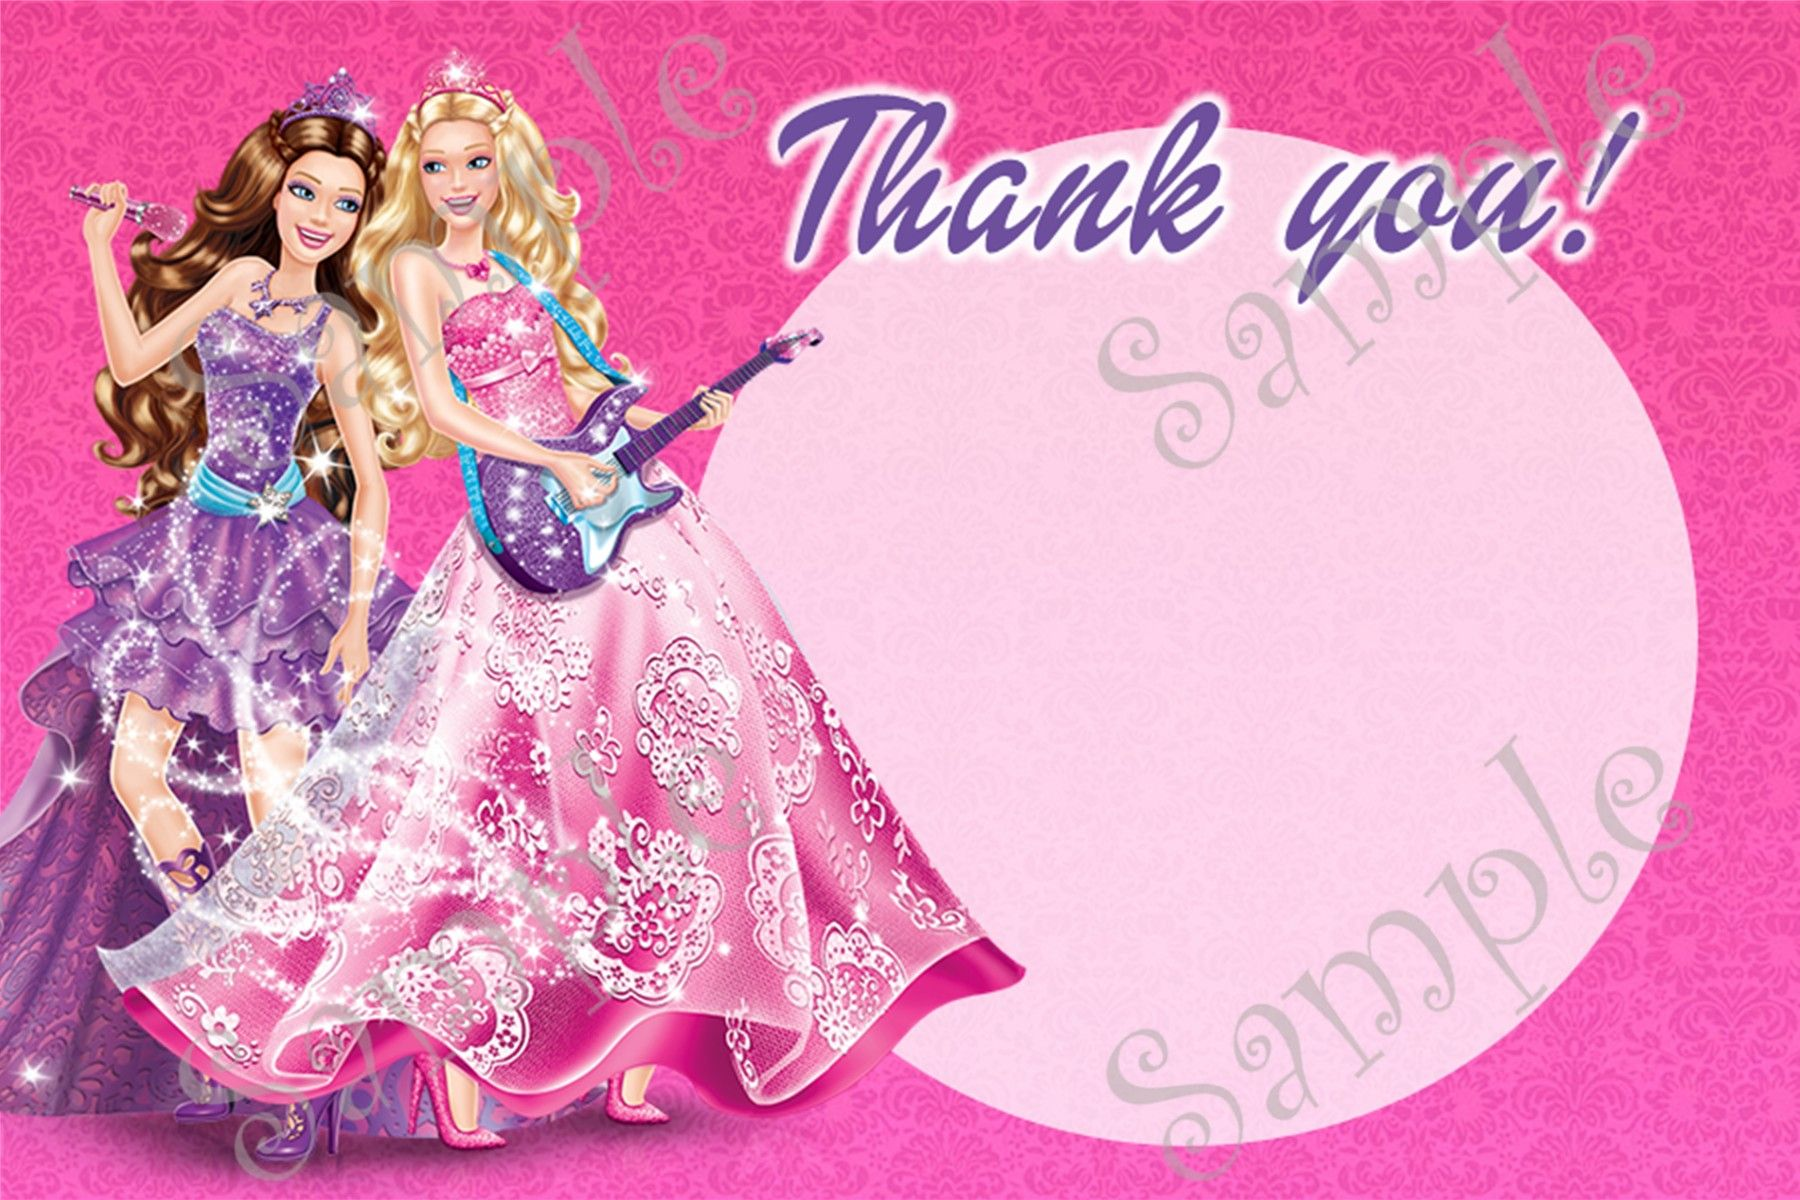 Barbie Princess and the Pop Star thank you card 4x6 Inches